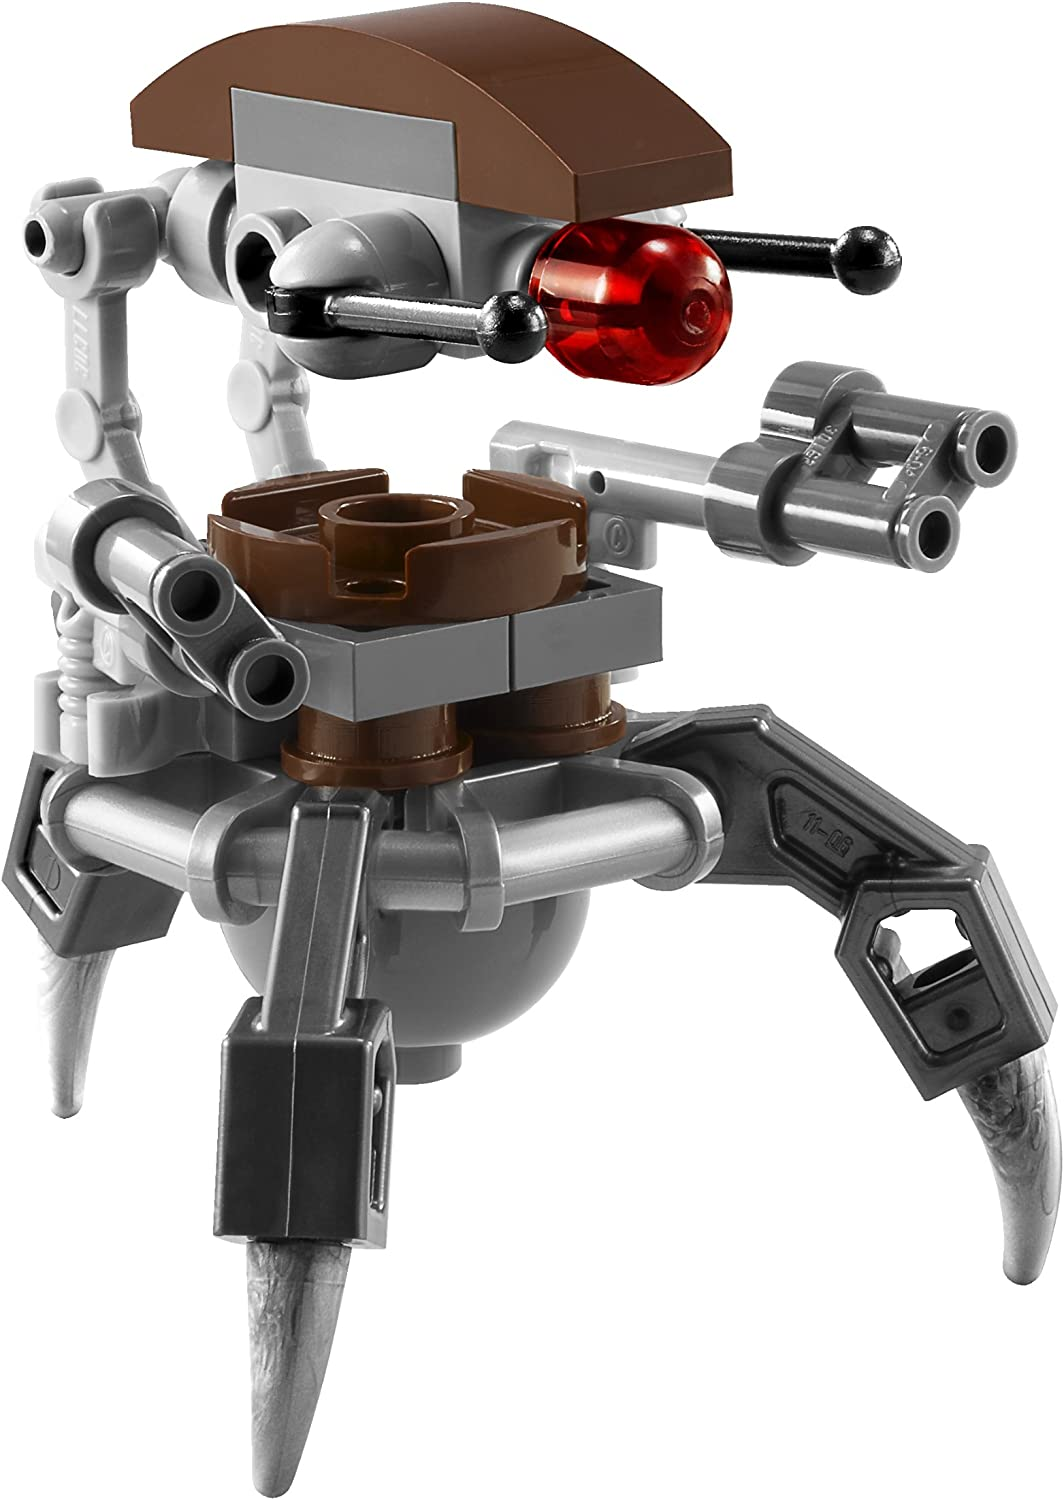 from Set 75000 Droideka LEGO STAR WARS Buildable SW0441